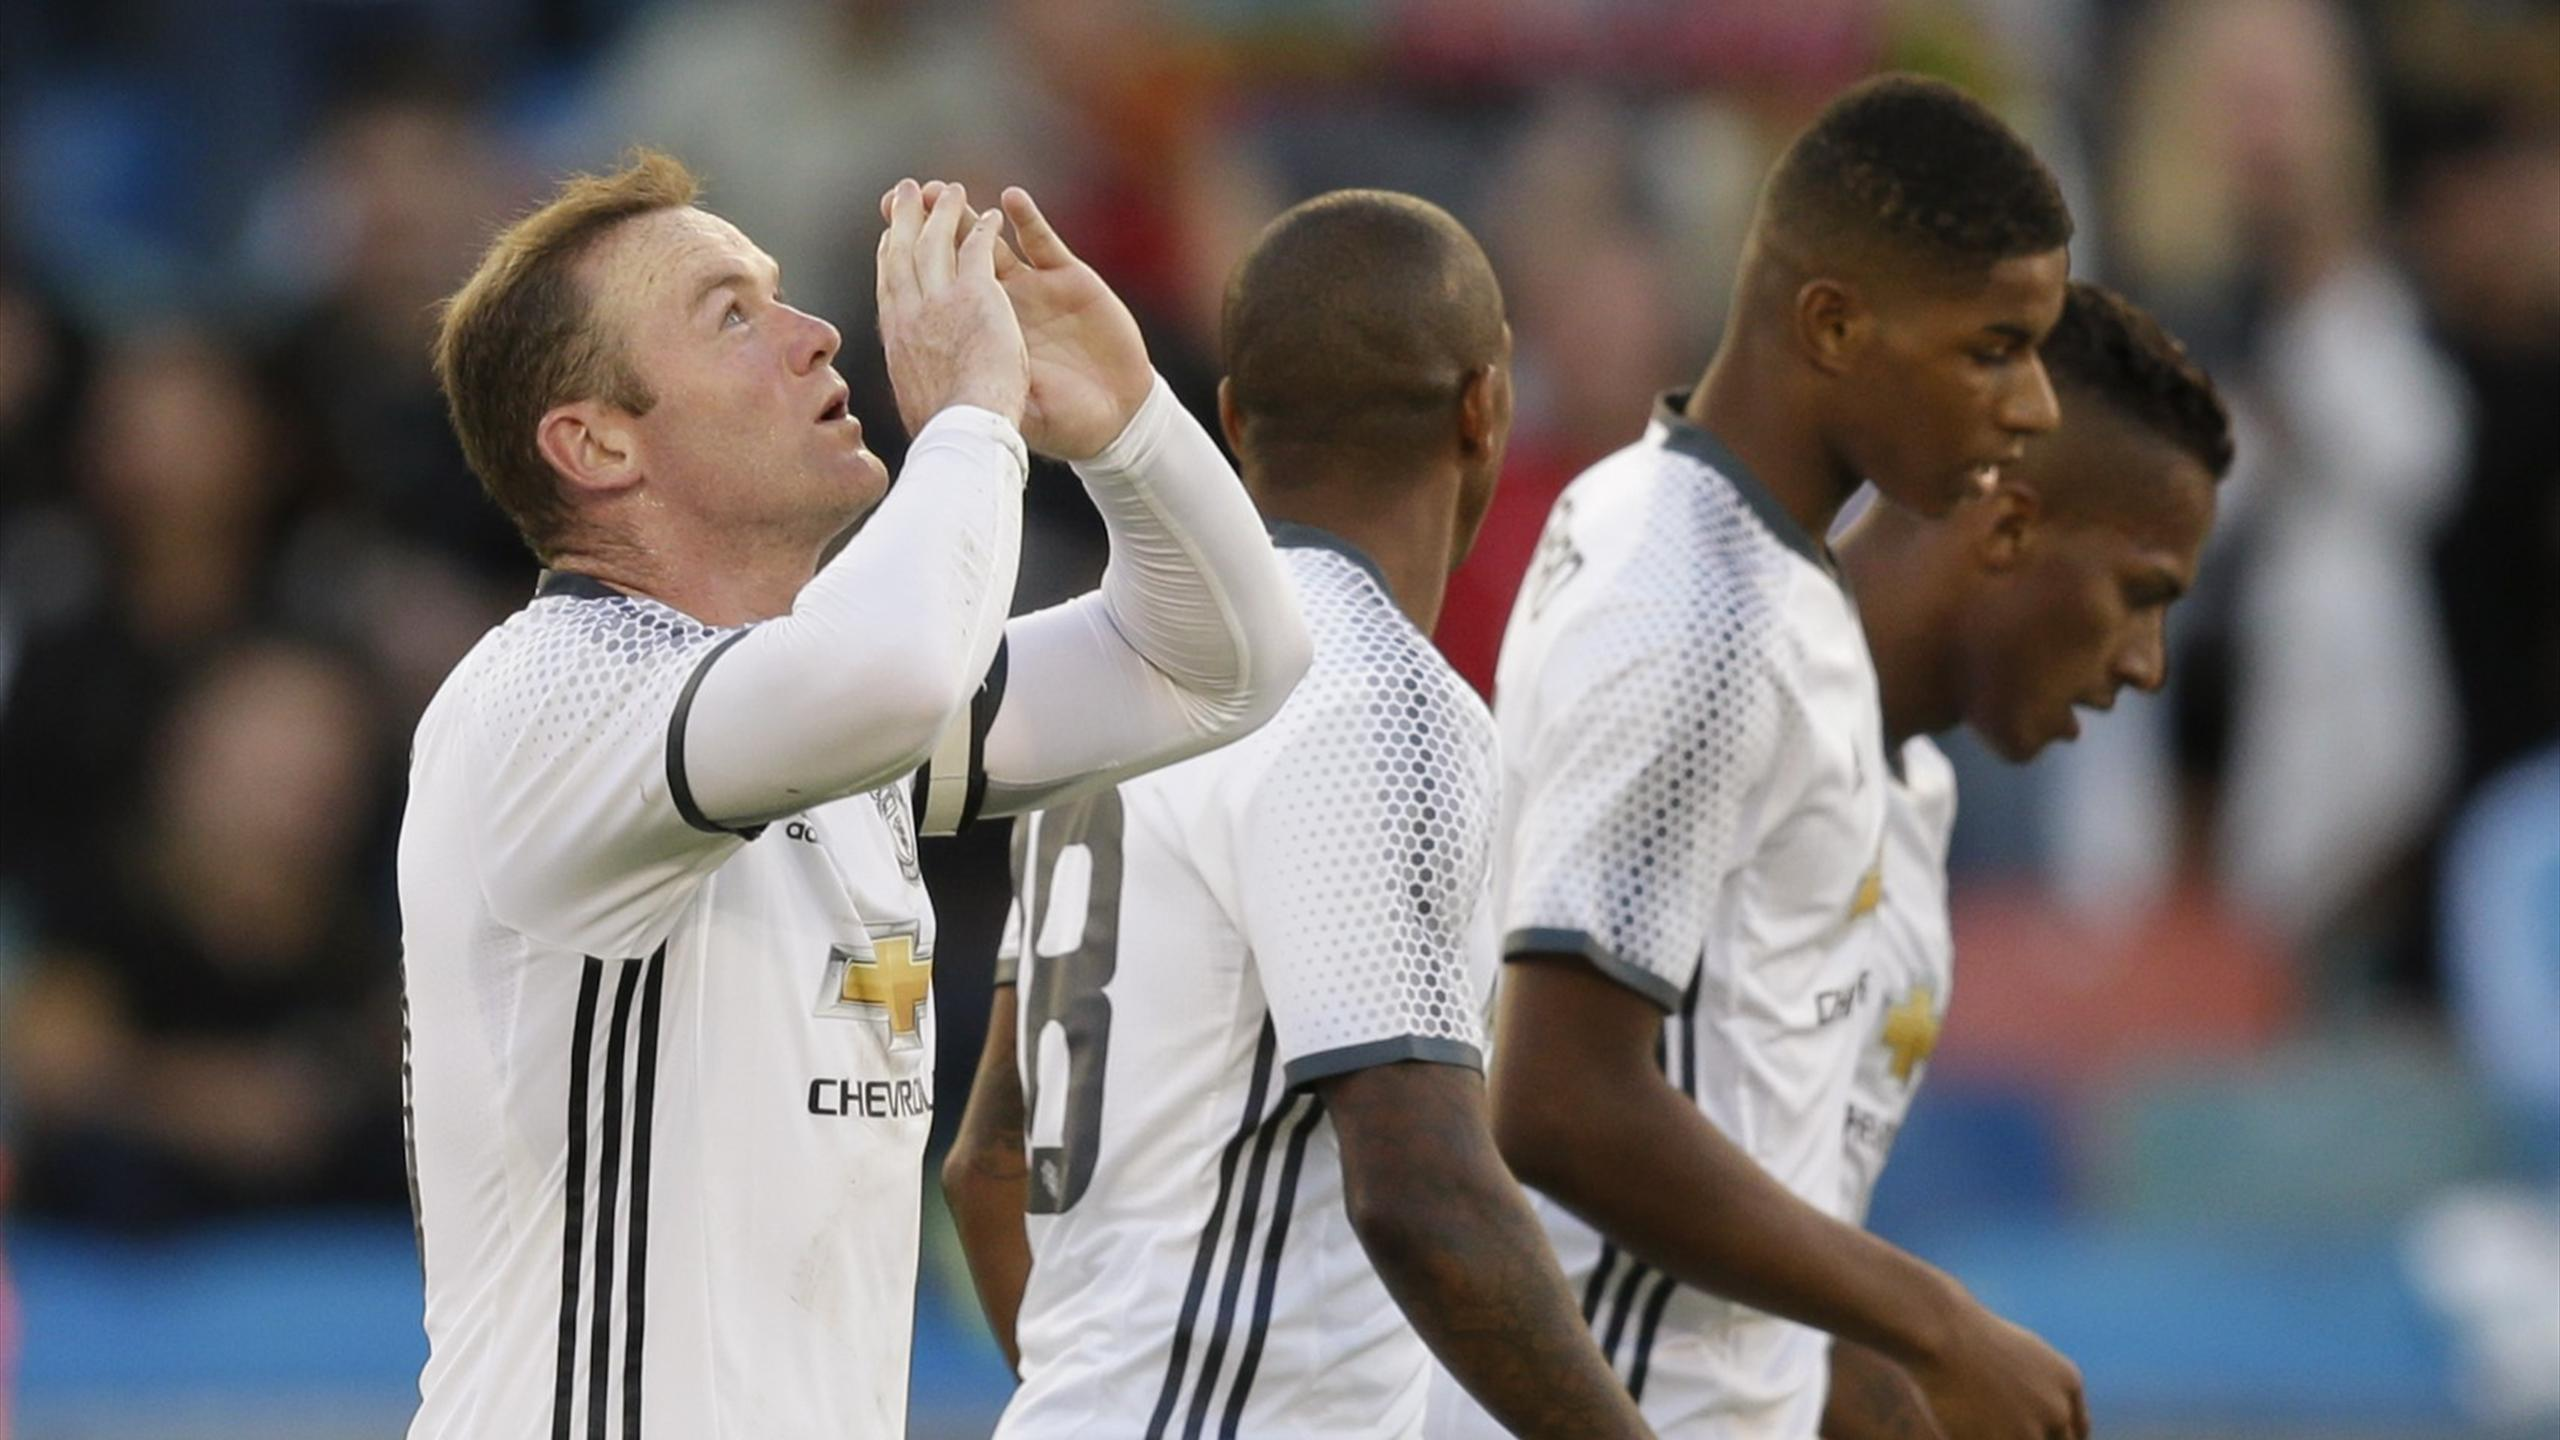 Manchester United's Wayne Rooney celebrates after scoring their third goal from the penalty spot